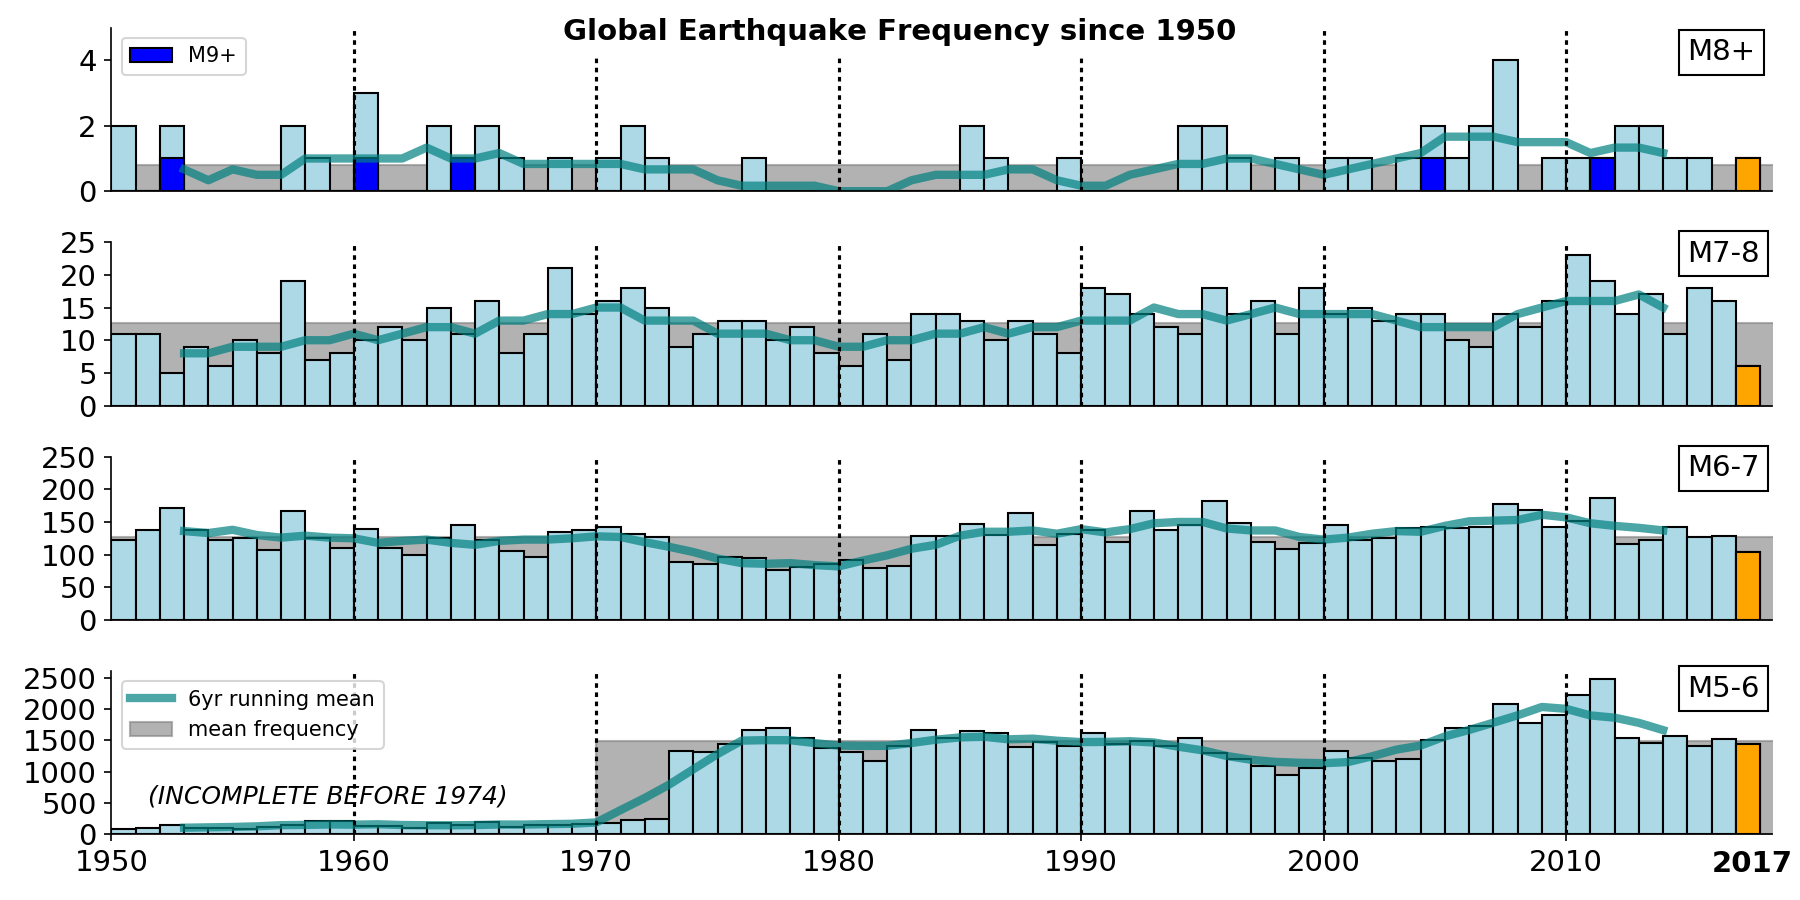 Bar charts showing yearly totals of earthquakes in different magnitude ranges since the mid-20th century. Lines show a smoothed, 6-year moving window average.